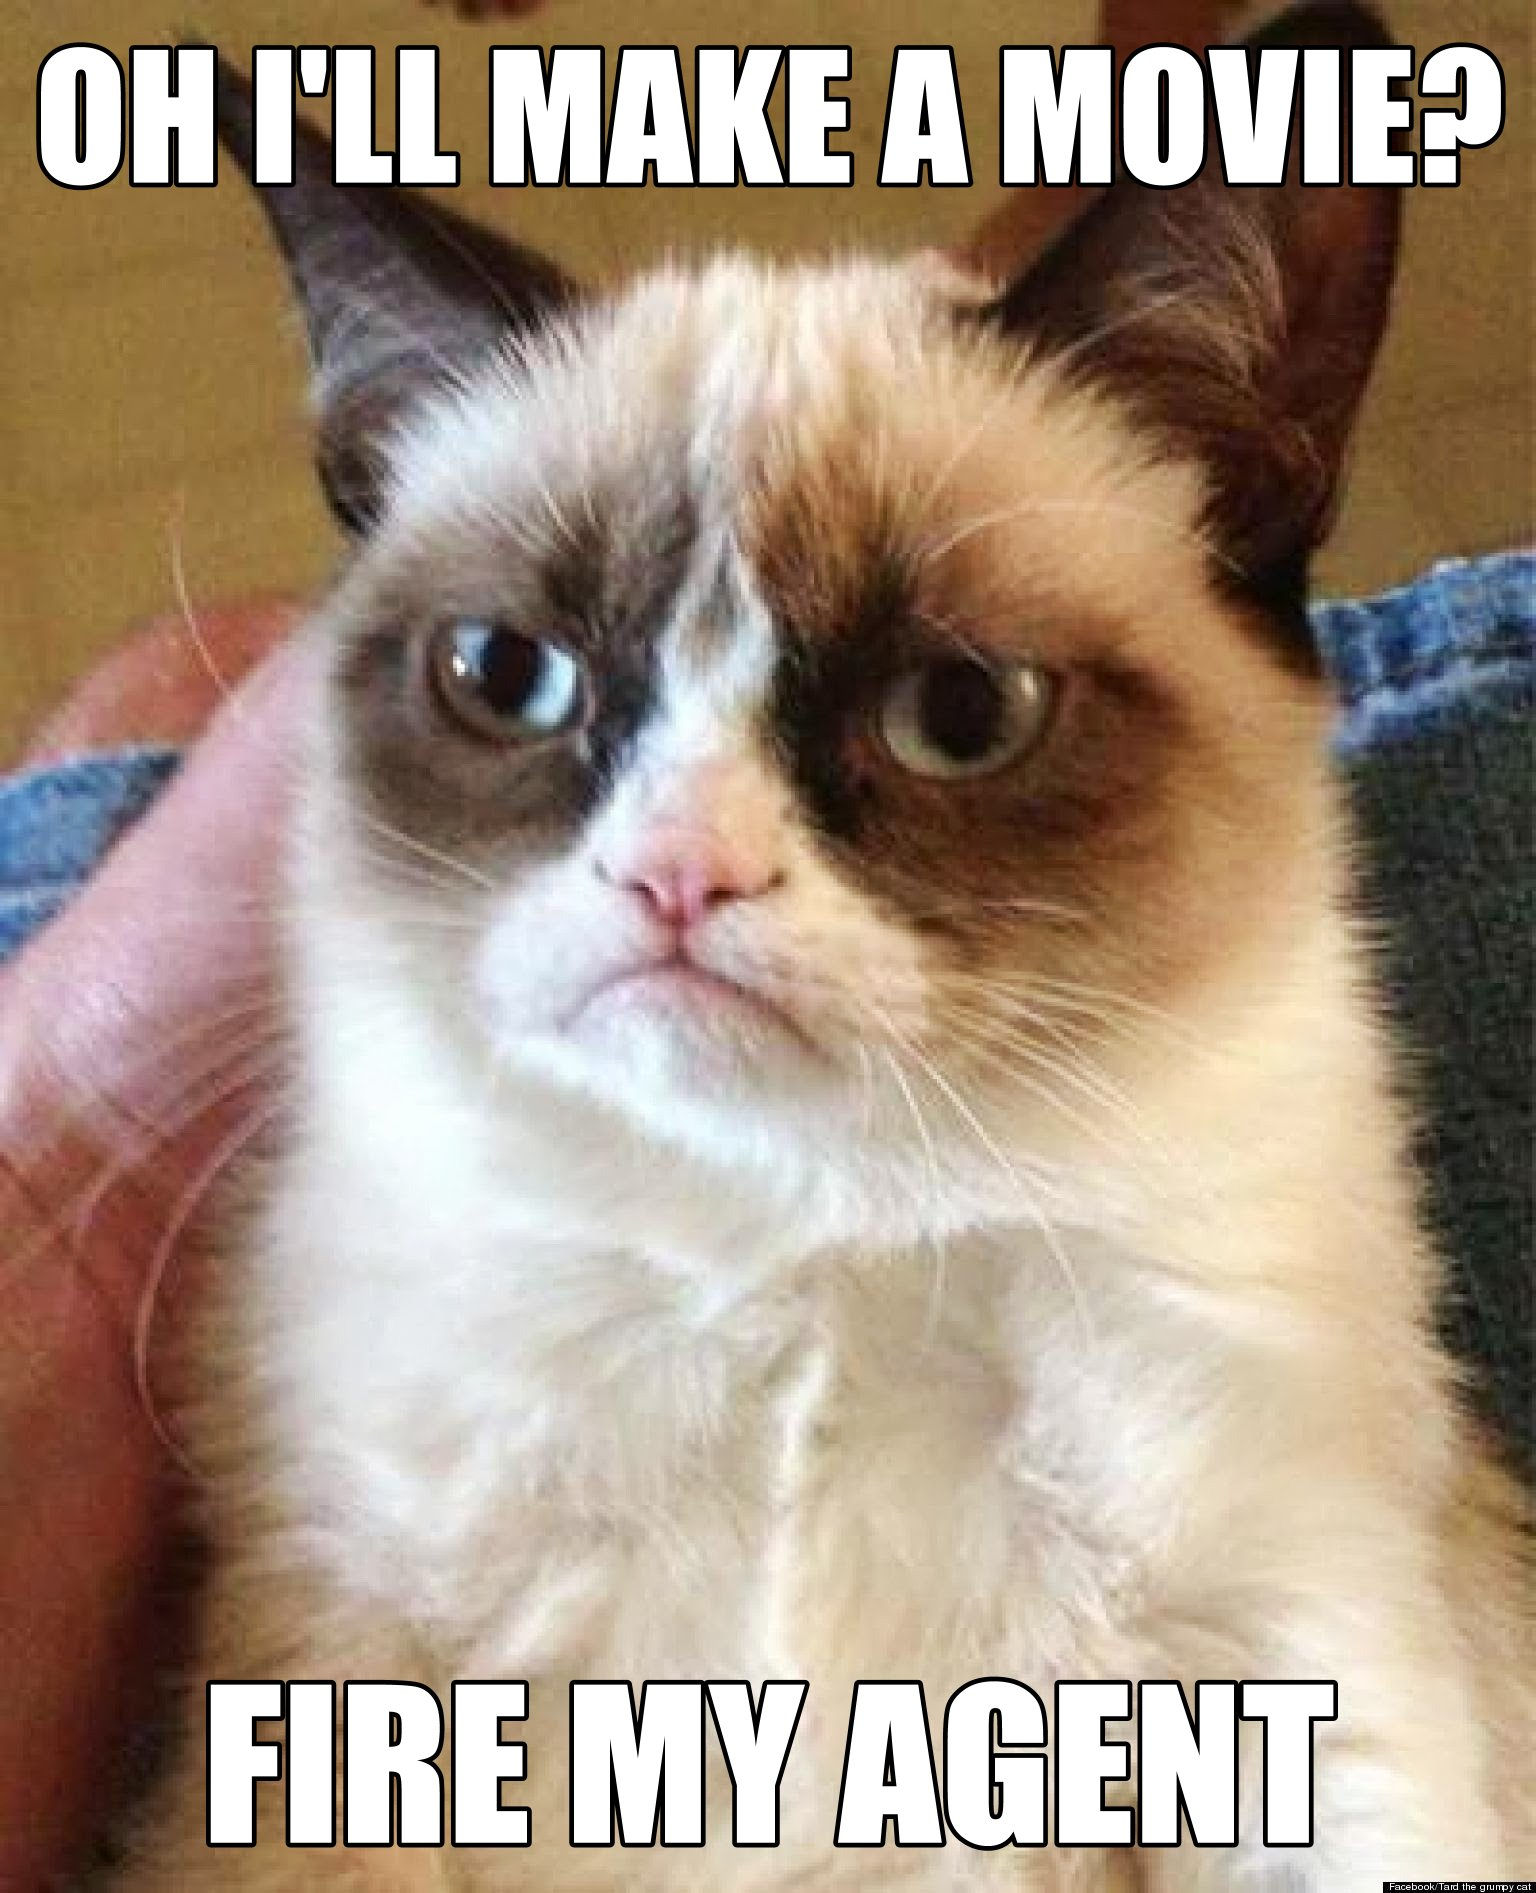 Grumpy cat learns about his movie grumpy cat know your meme ohill make a movie fire my agent facebook tard the grumpy cat thecheapjerseys Choice Image